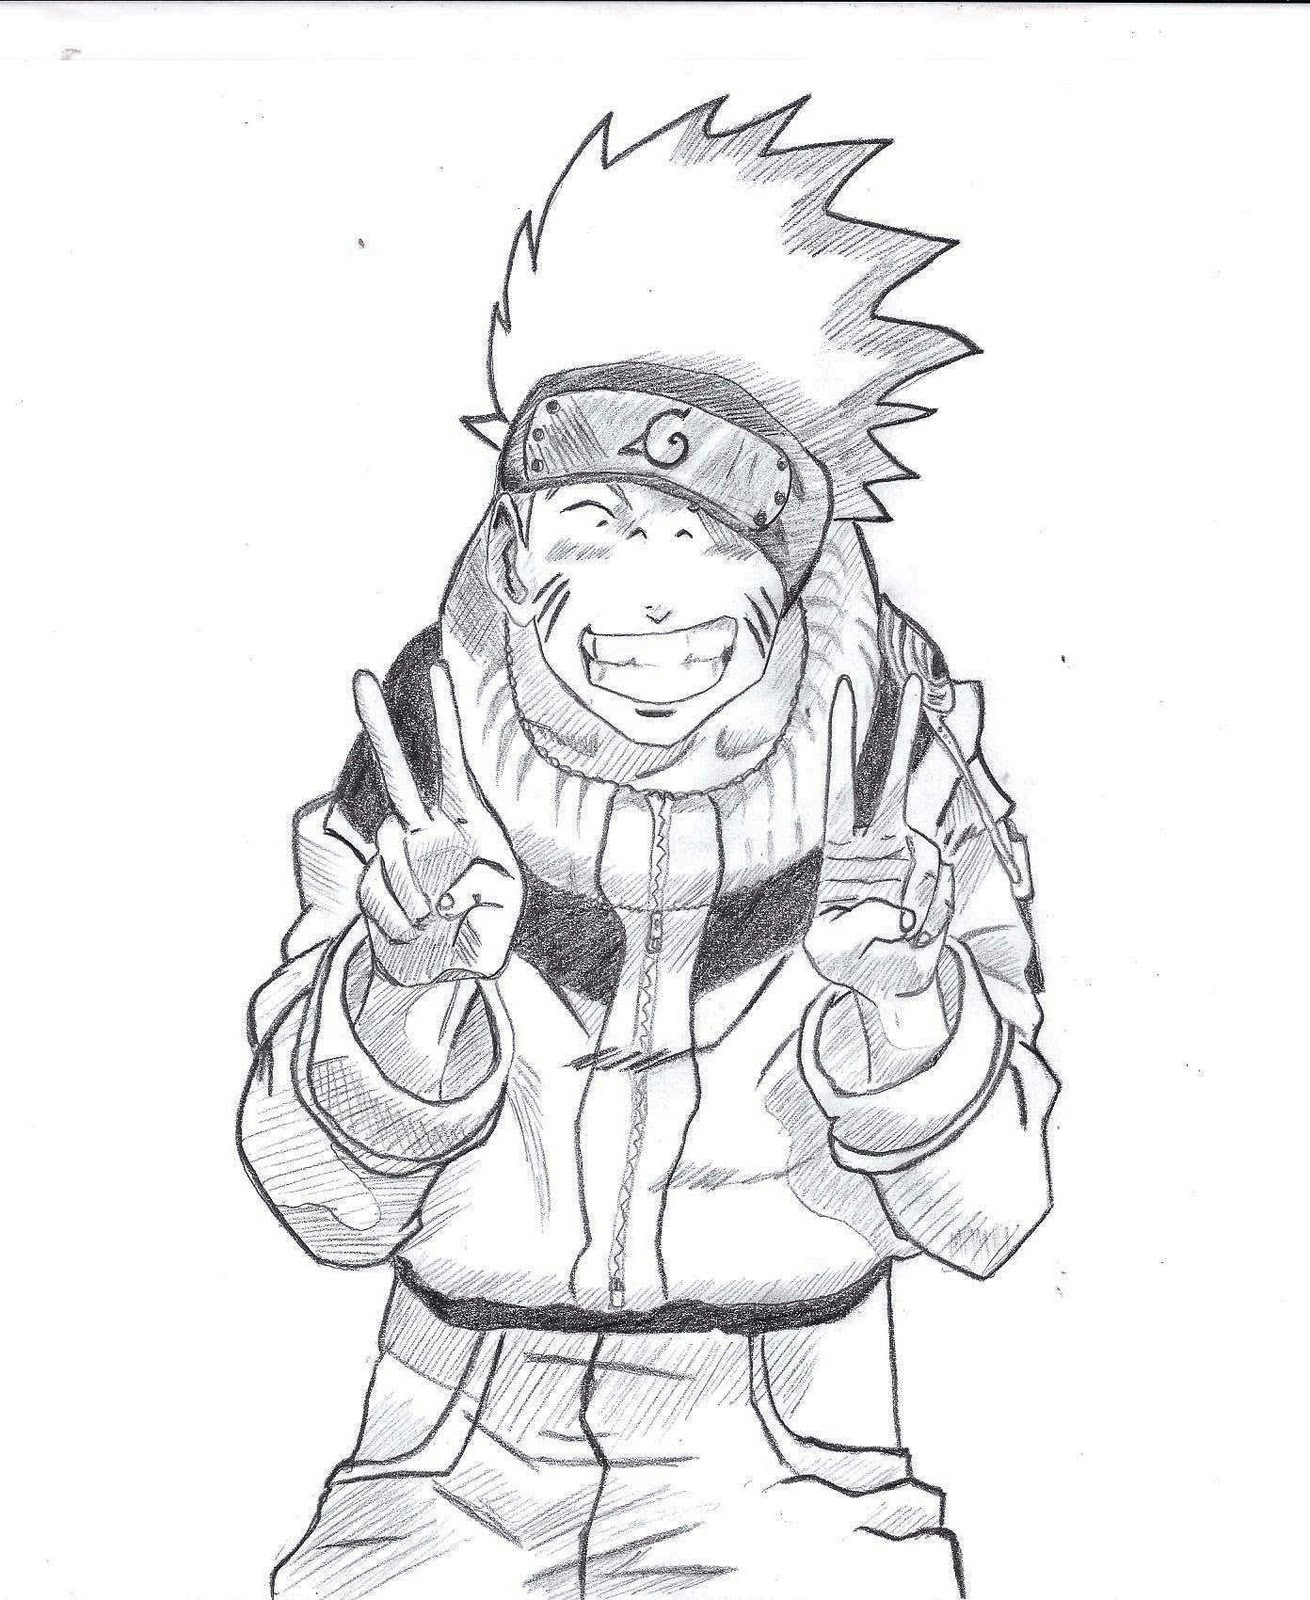 Drawn naruto naruto uzumaki Drawing Uzumaki Zahid Arts: Naruto